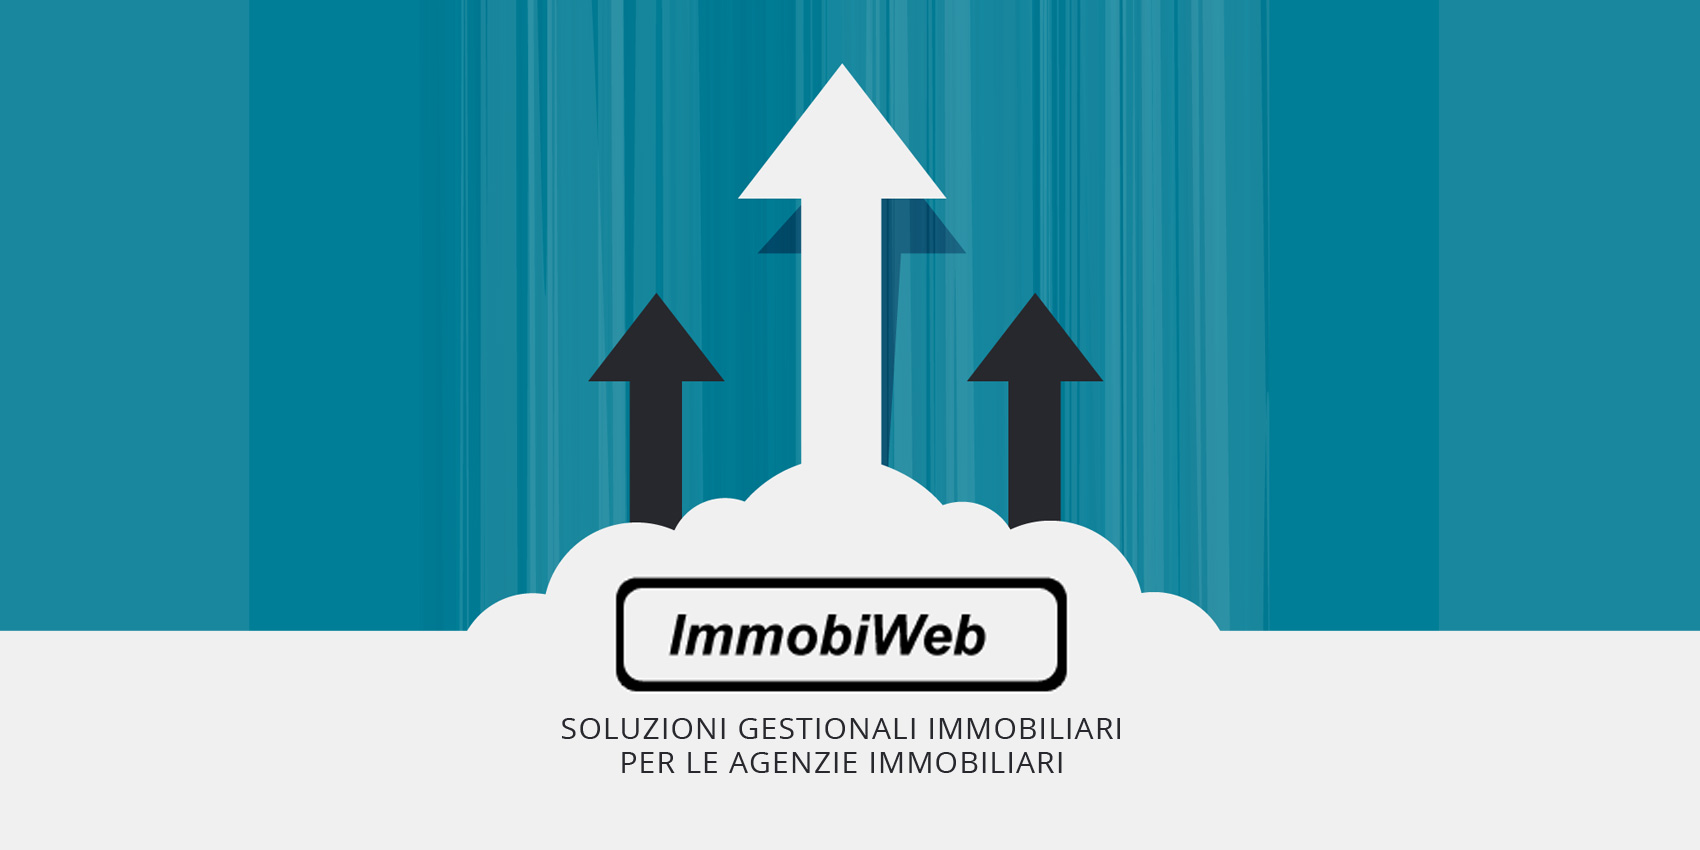 immobiWeb-gestionale-immobiliare